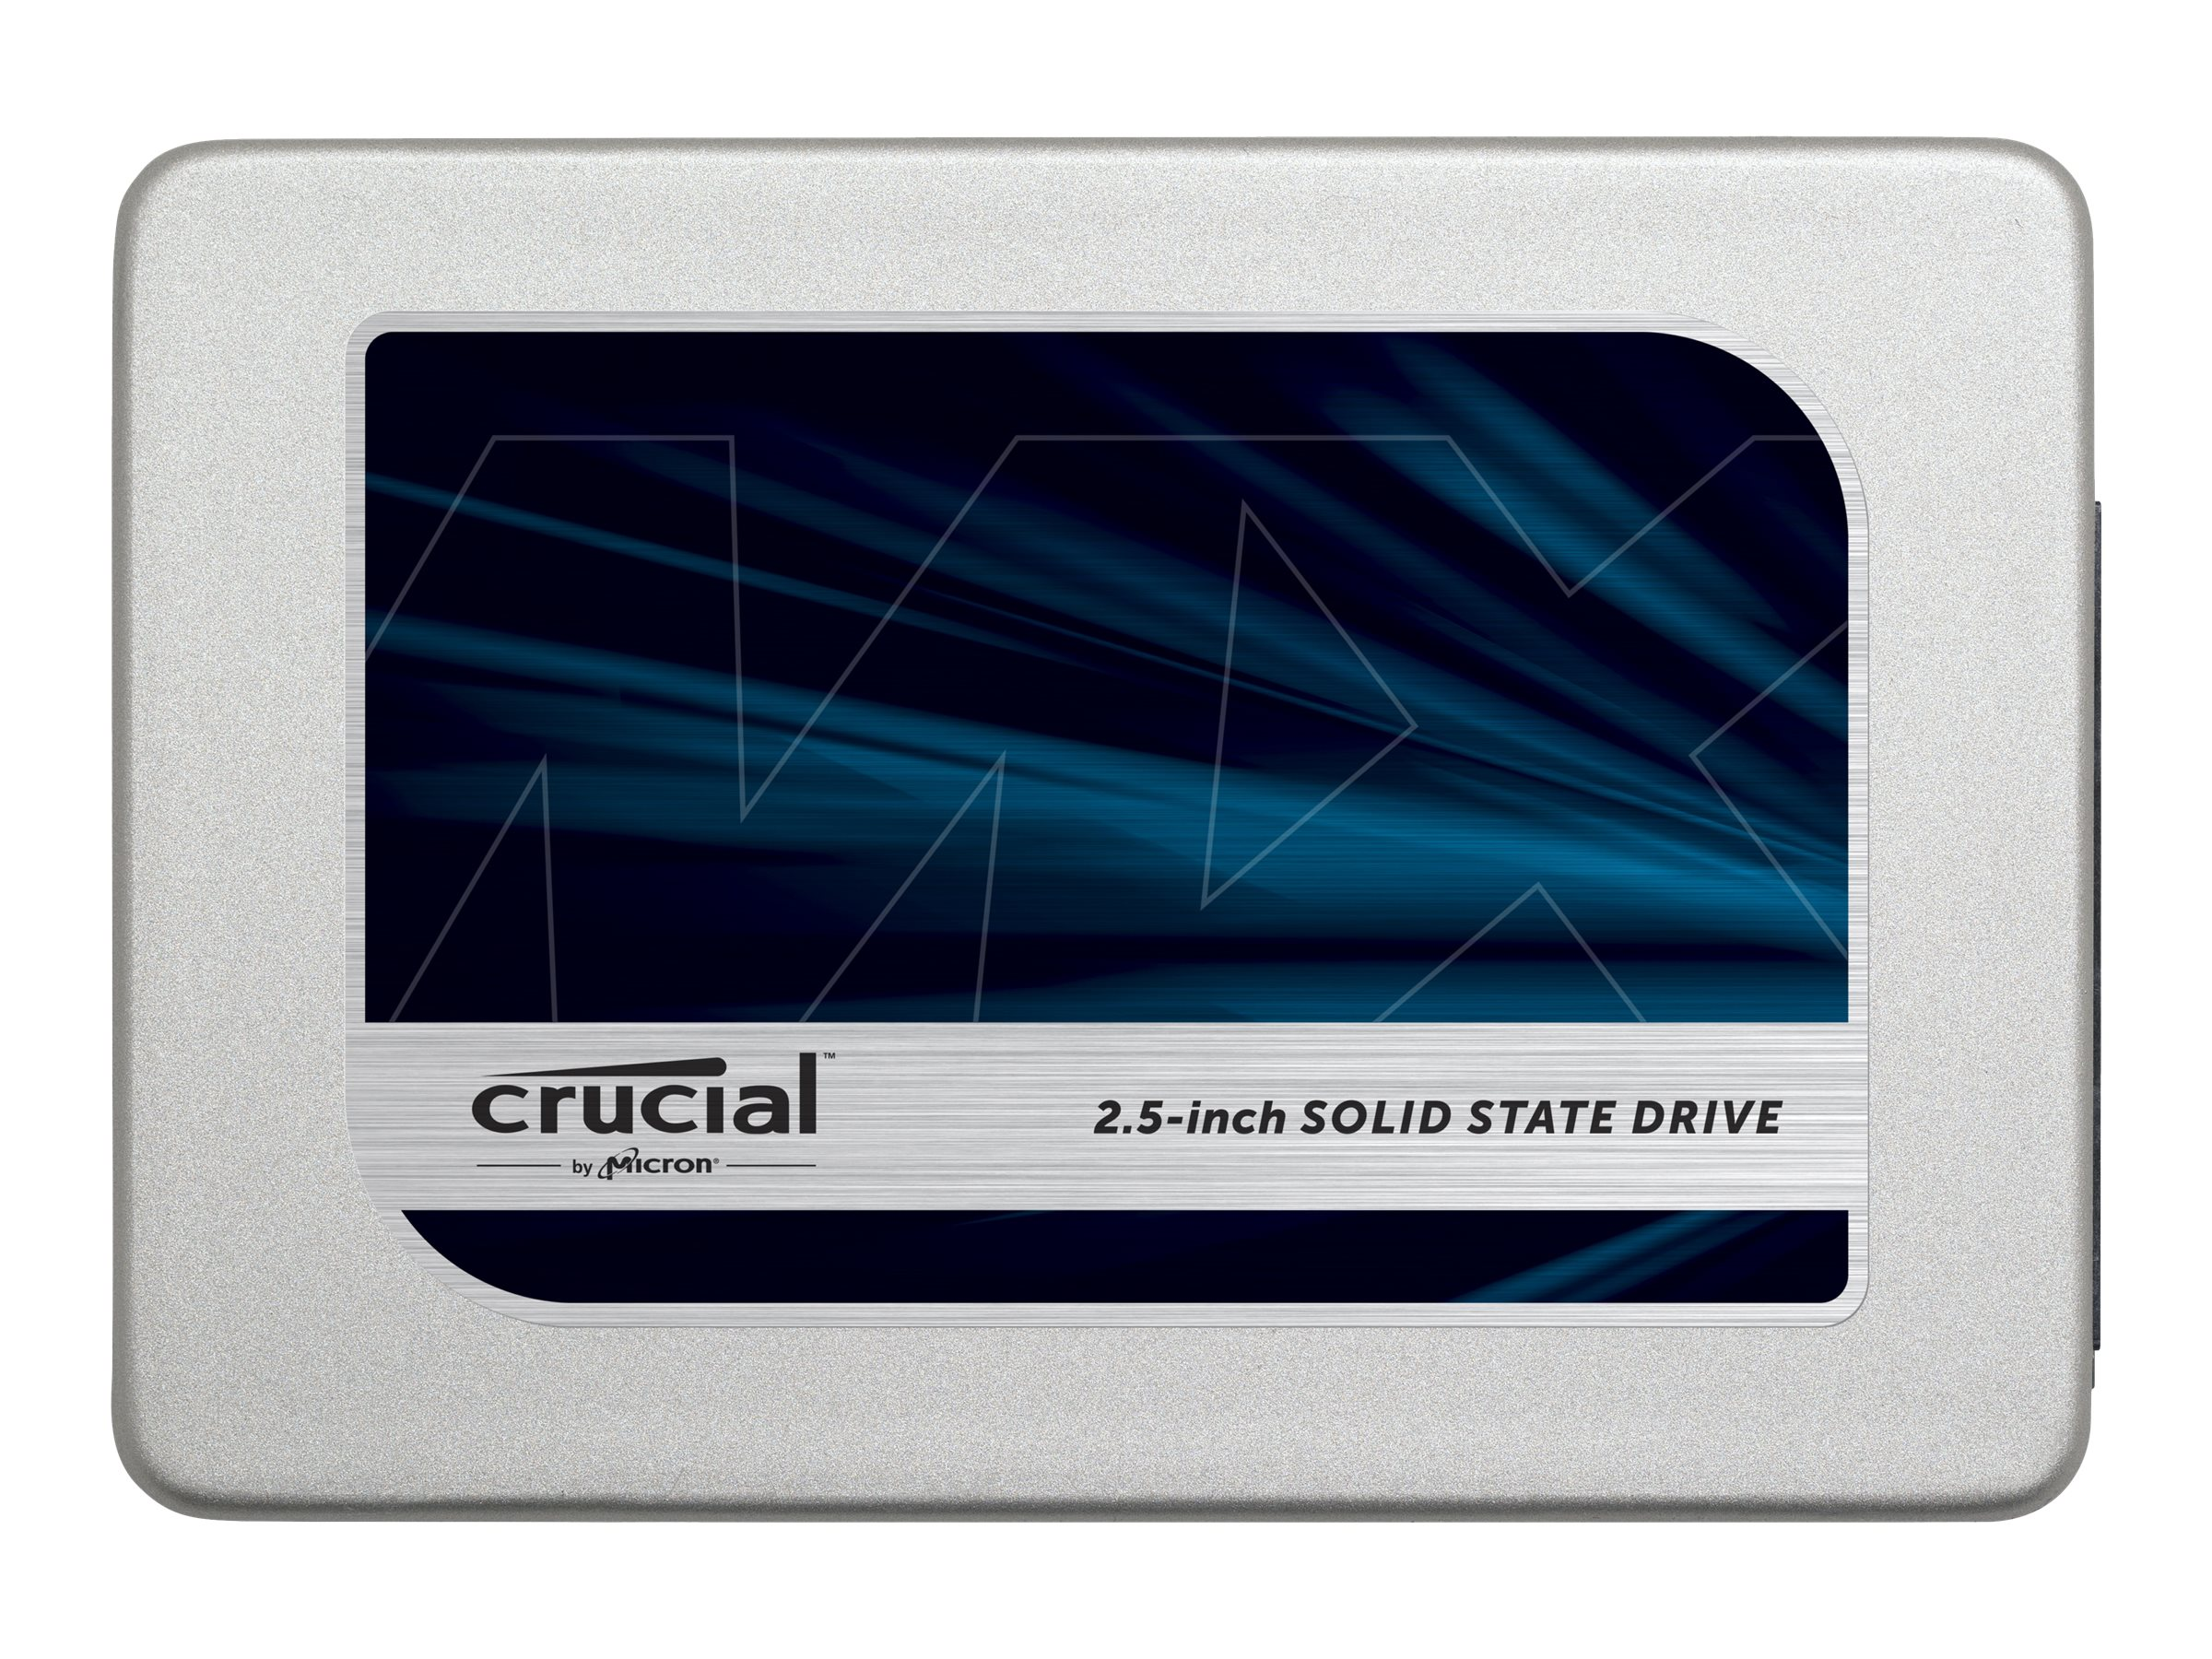 Micron Consumer Products Group CT275MX300SSD1 Image 1